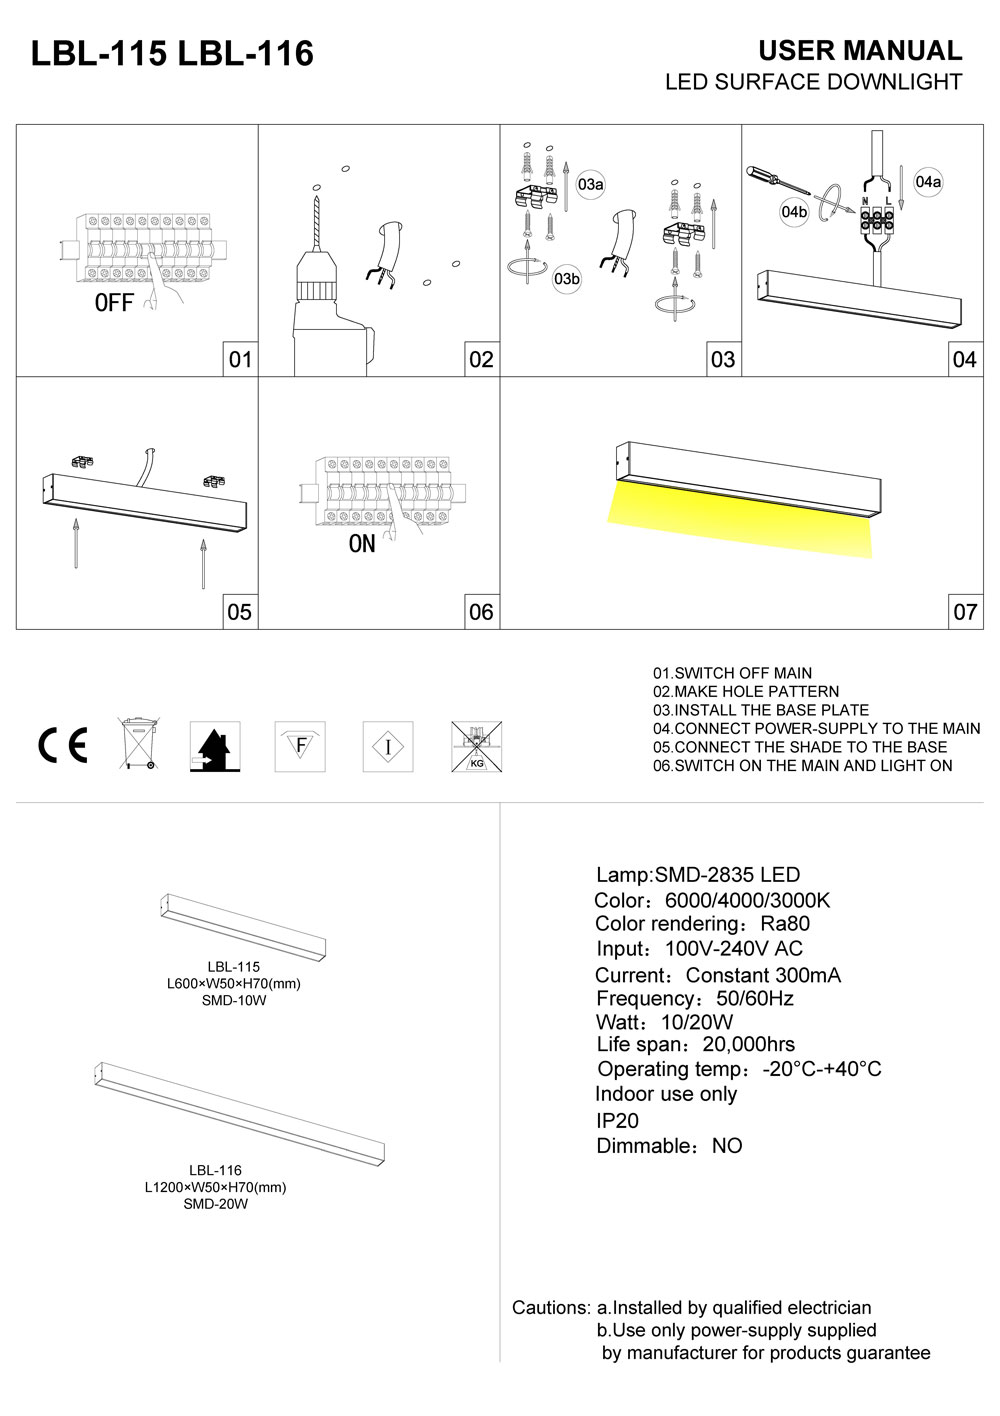 LBL-115-LBL-116 Linear surface mounted LED downlight installation guide